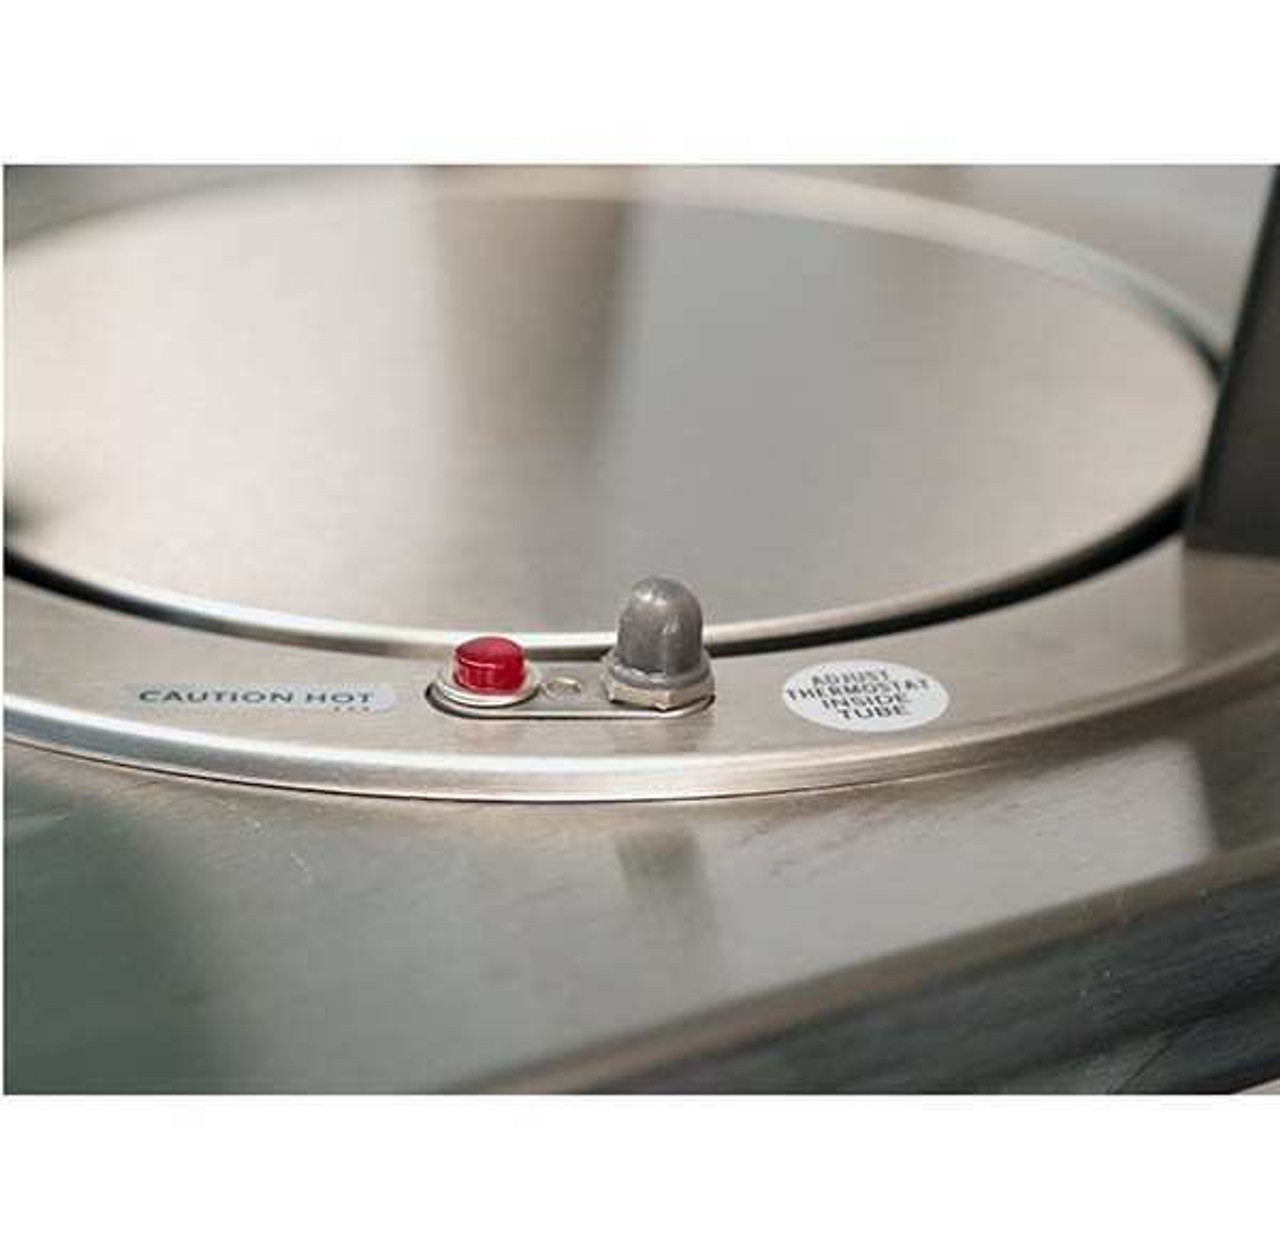 """Dish Dispenser, heated, cabinet style, enclosed base, mobile, (2) self-leveling dish dispensing tubes, 8-1/4"""" to 9-1/8"""" diameter dish size, stainless steel construction, 4"""" Lake-Glide® swivel casters (2) with brakes, 6' coiled cord with NEMA 5-15P, NSF, UL, Made in USA"""